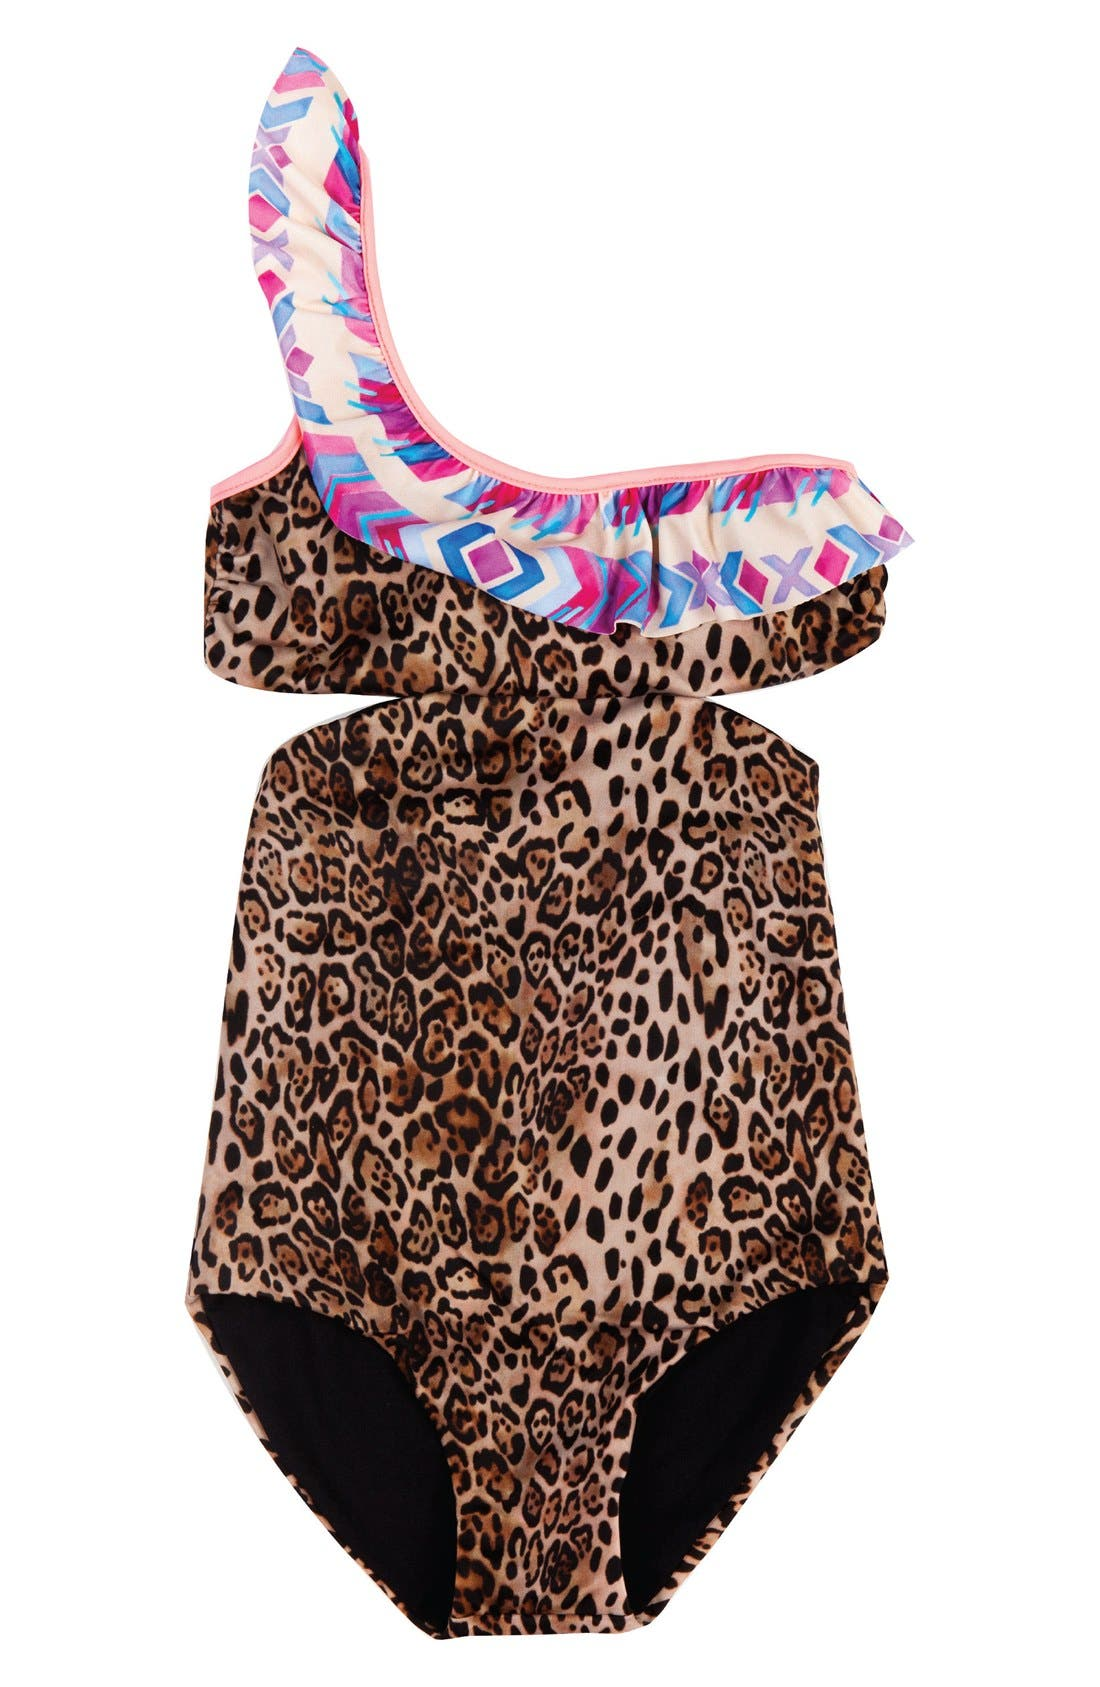 BOWIE X JAMES Cococolada One-Piece Cutout Swimsuit (Toddler Girls, Little Girls & Big Girls)